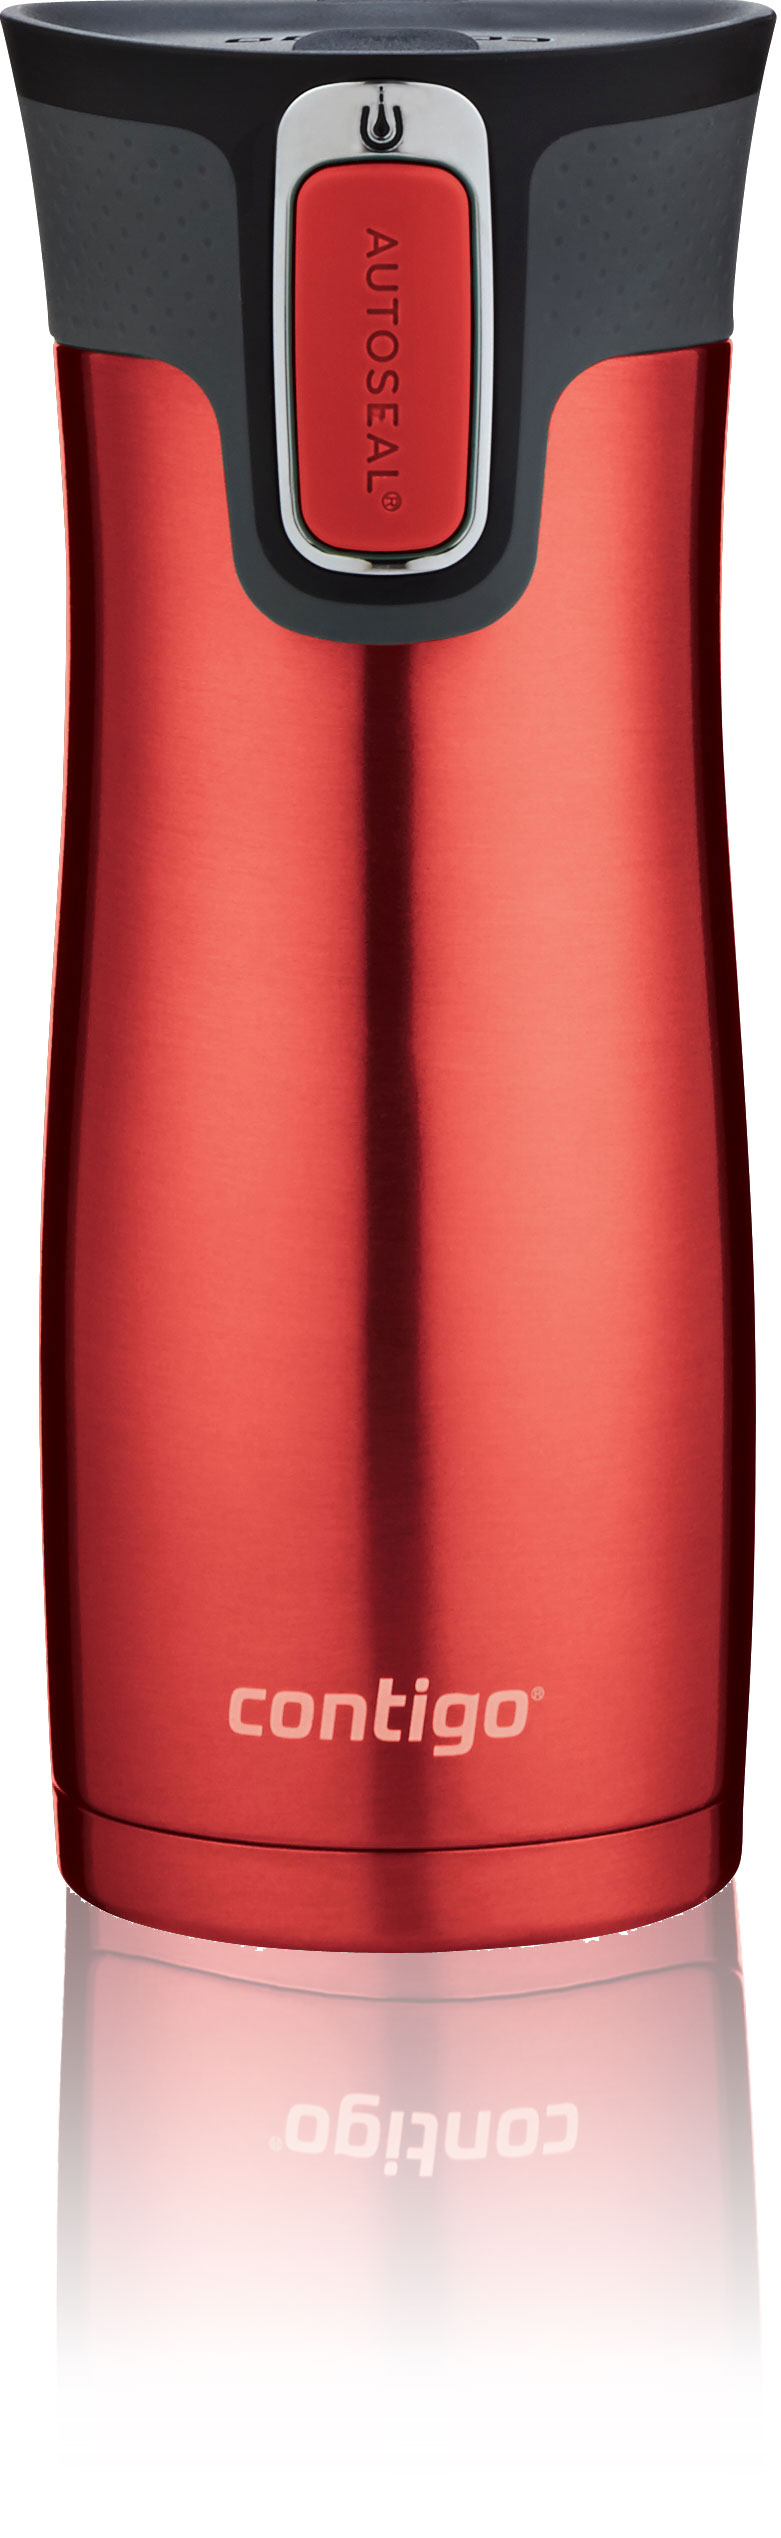 Contigo - WestLoop 2.0 - 16 Oz - Red   SKU: 70475